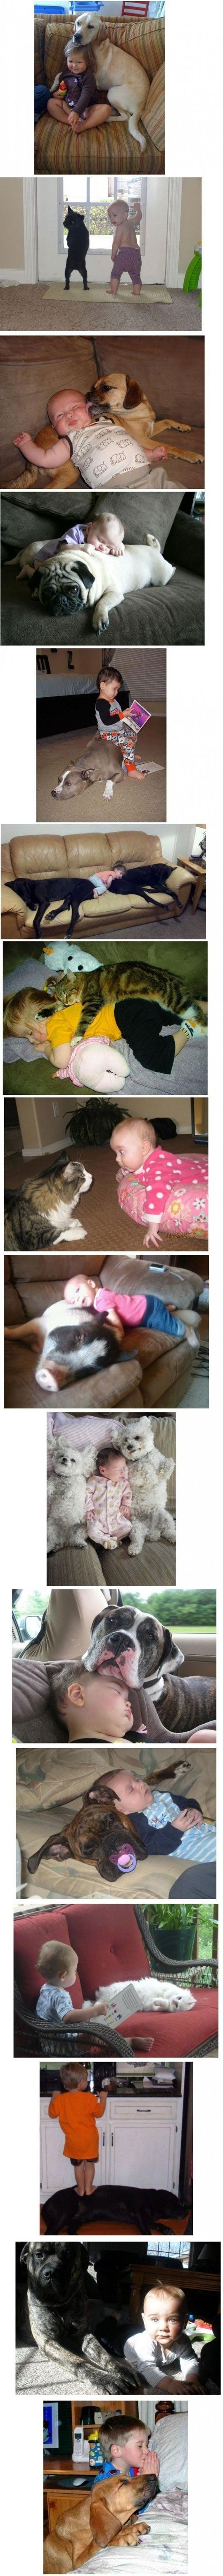 Kids and animals: Dogs, Sweet, Best Friends, So Cute, Pigs, Cutest Things, Puppys, Kids And Pet, Kids And Animal